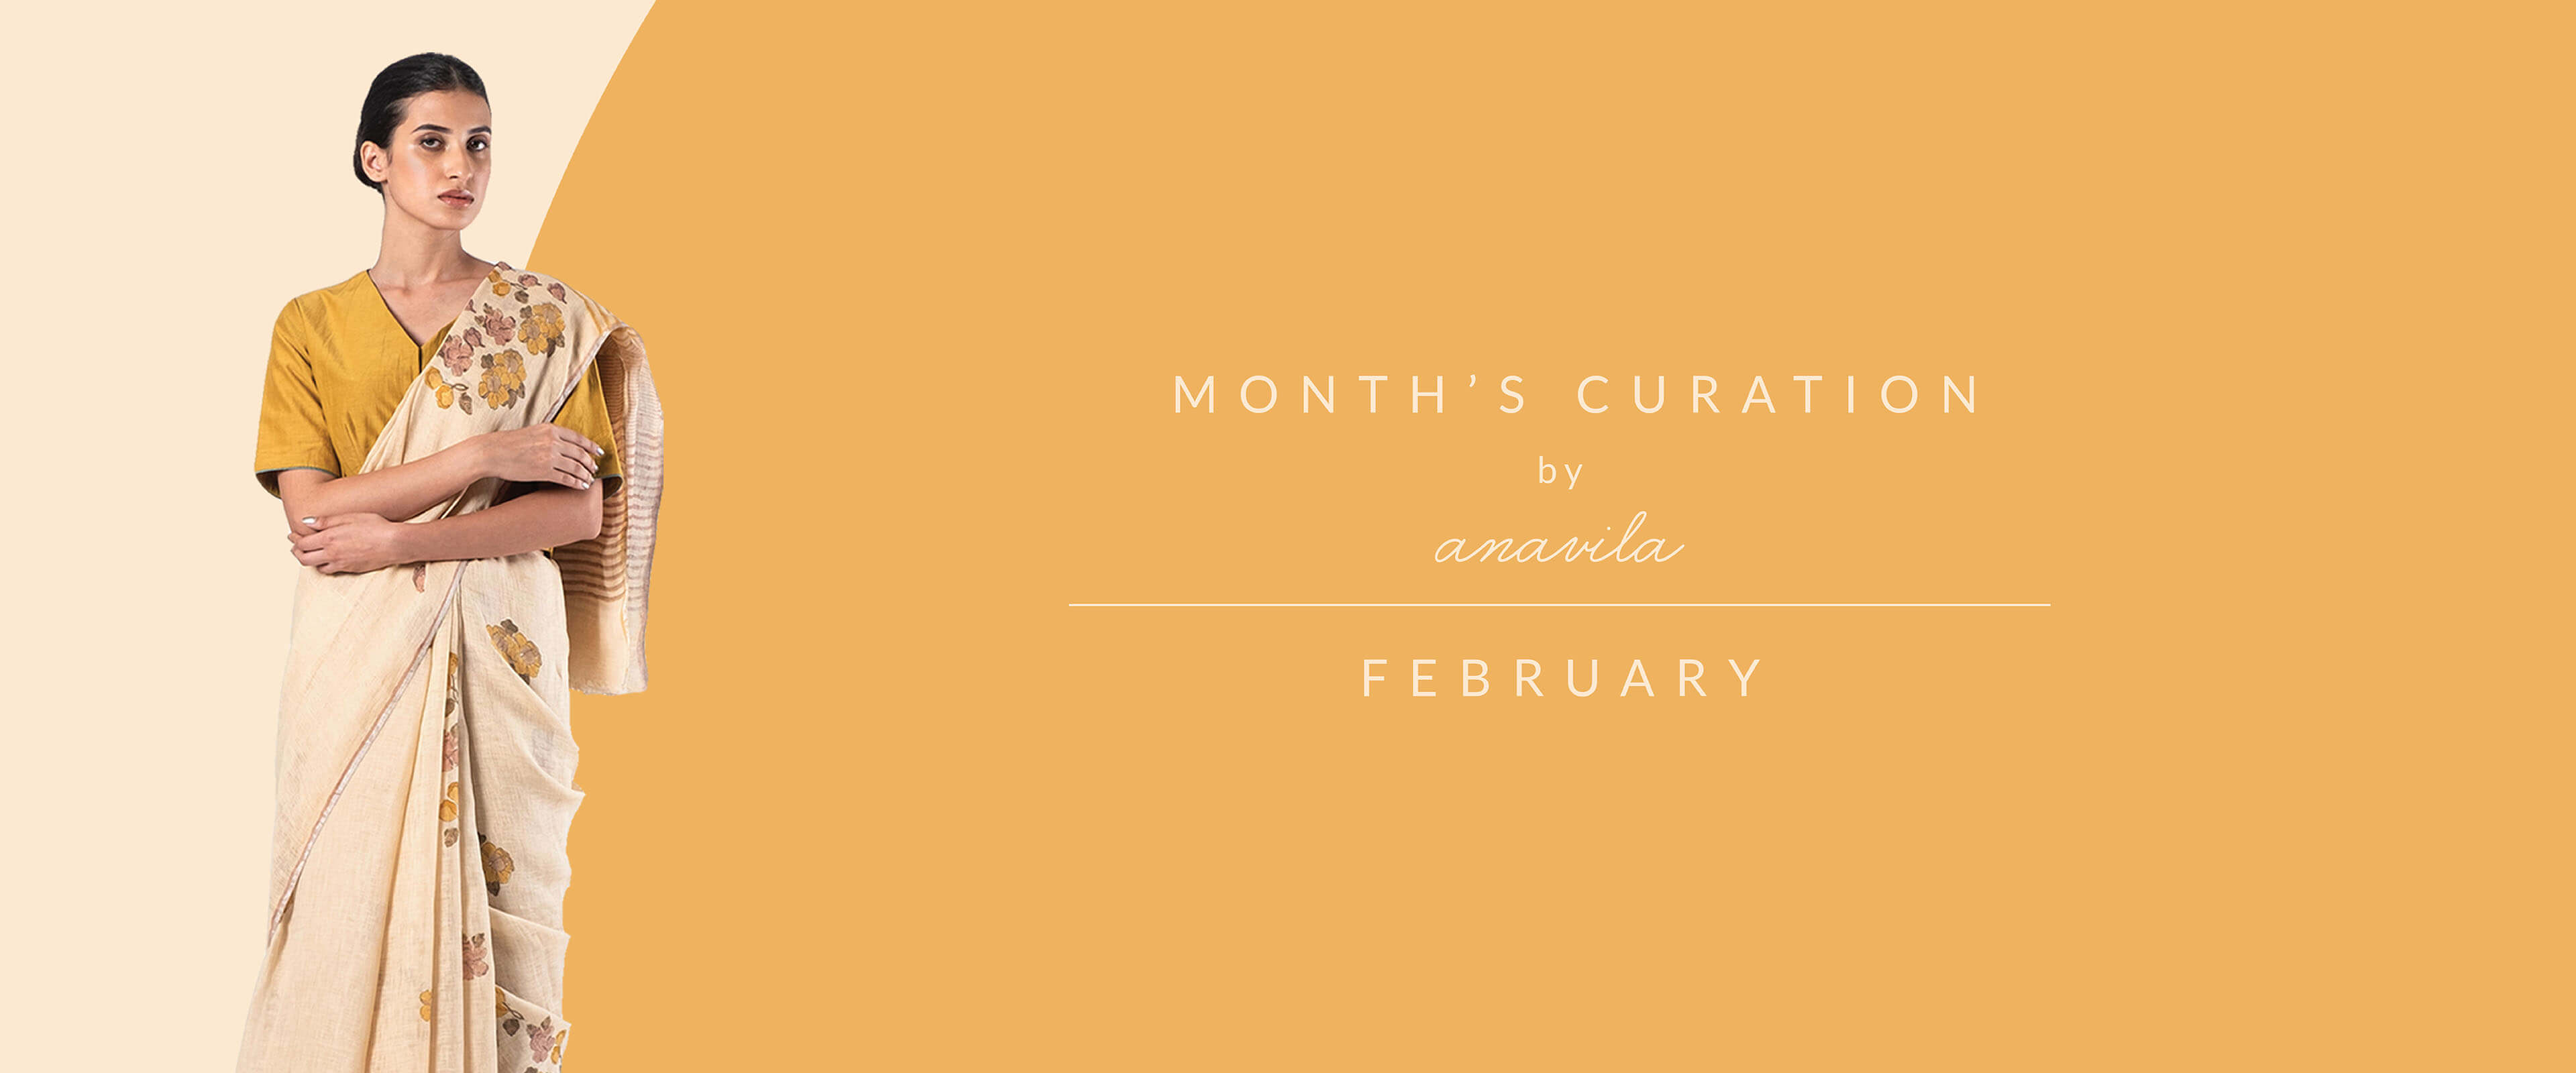 Month's Curation by Anavila